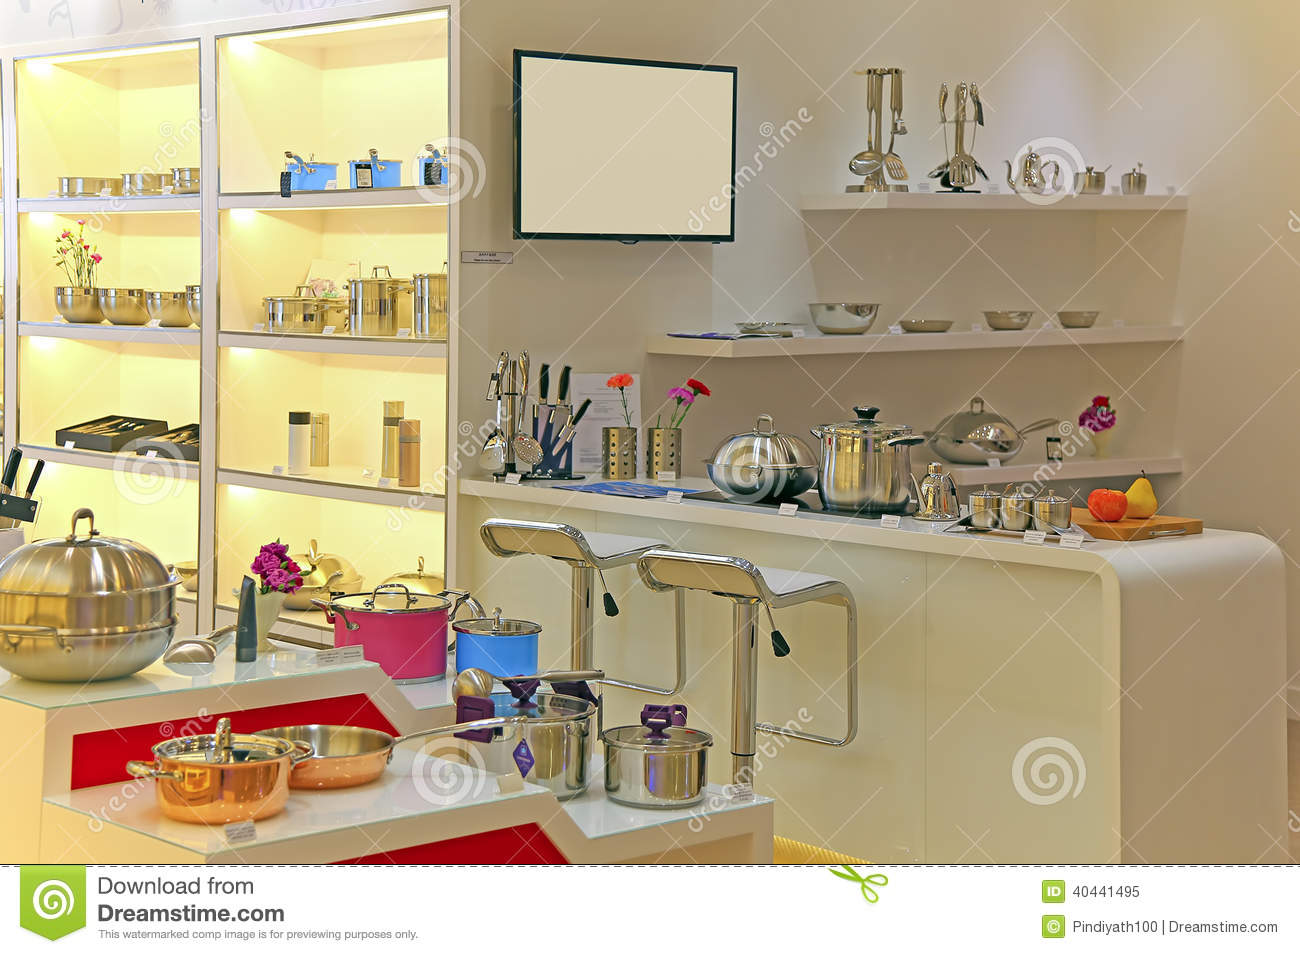 Home appliances store stock image. Image of deal, cooker - 40441495